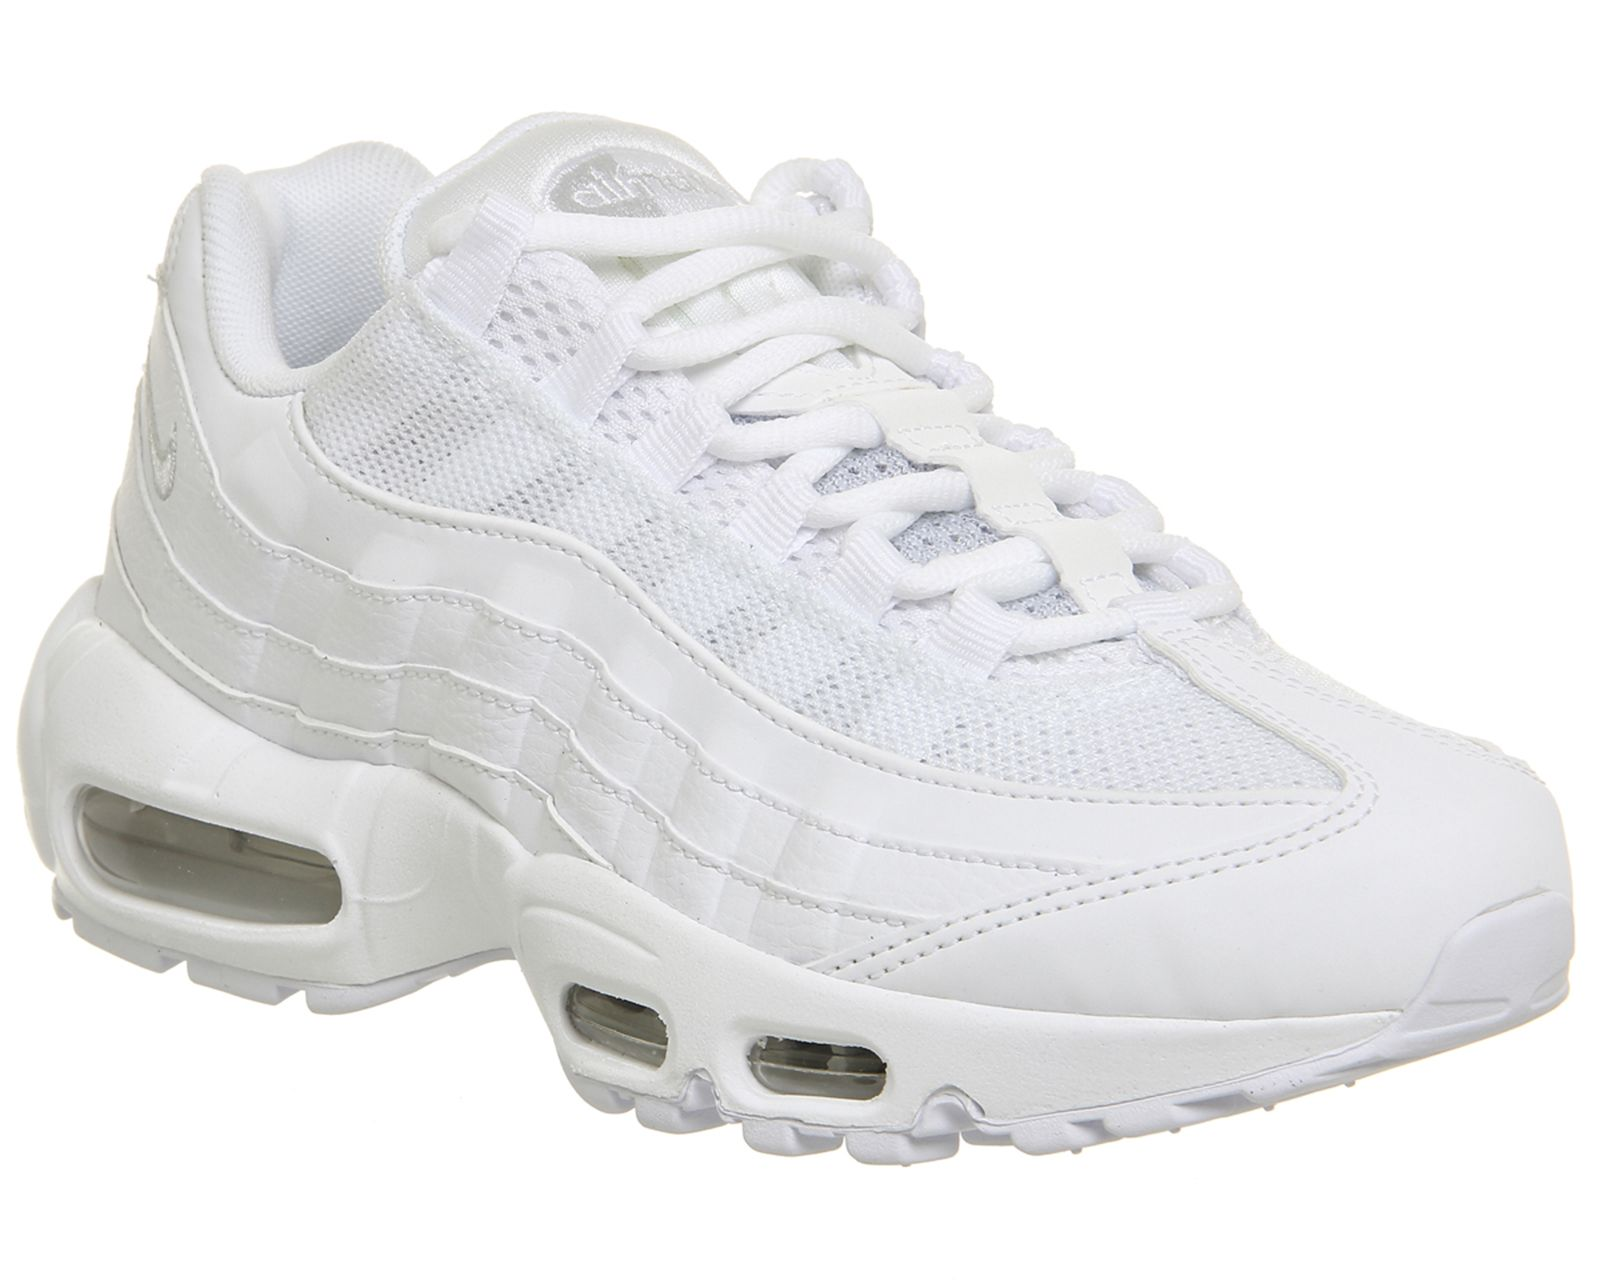 Nike, Air Max 95, White Pure Platinum | outfits in 2019